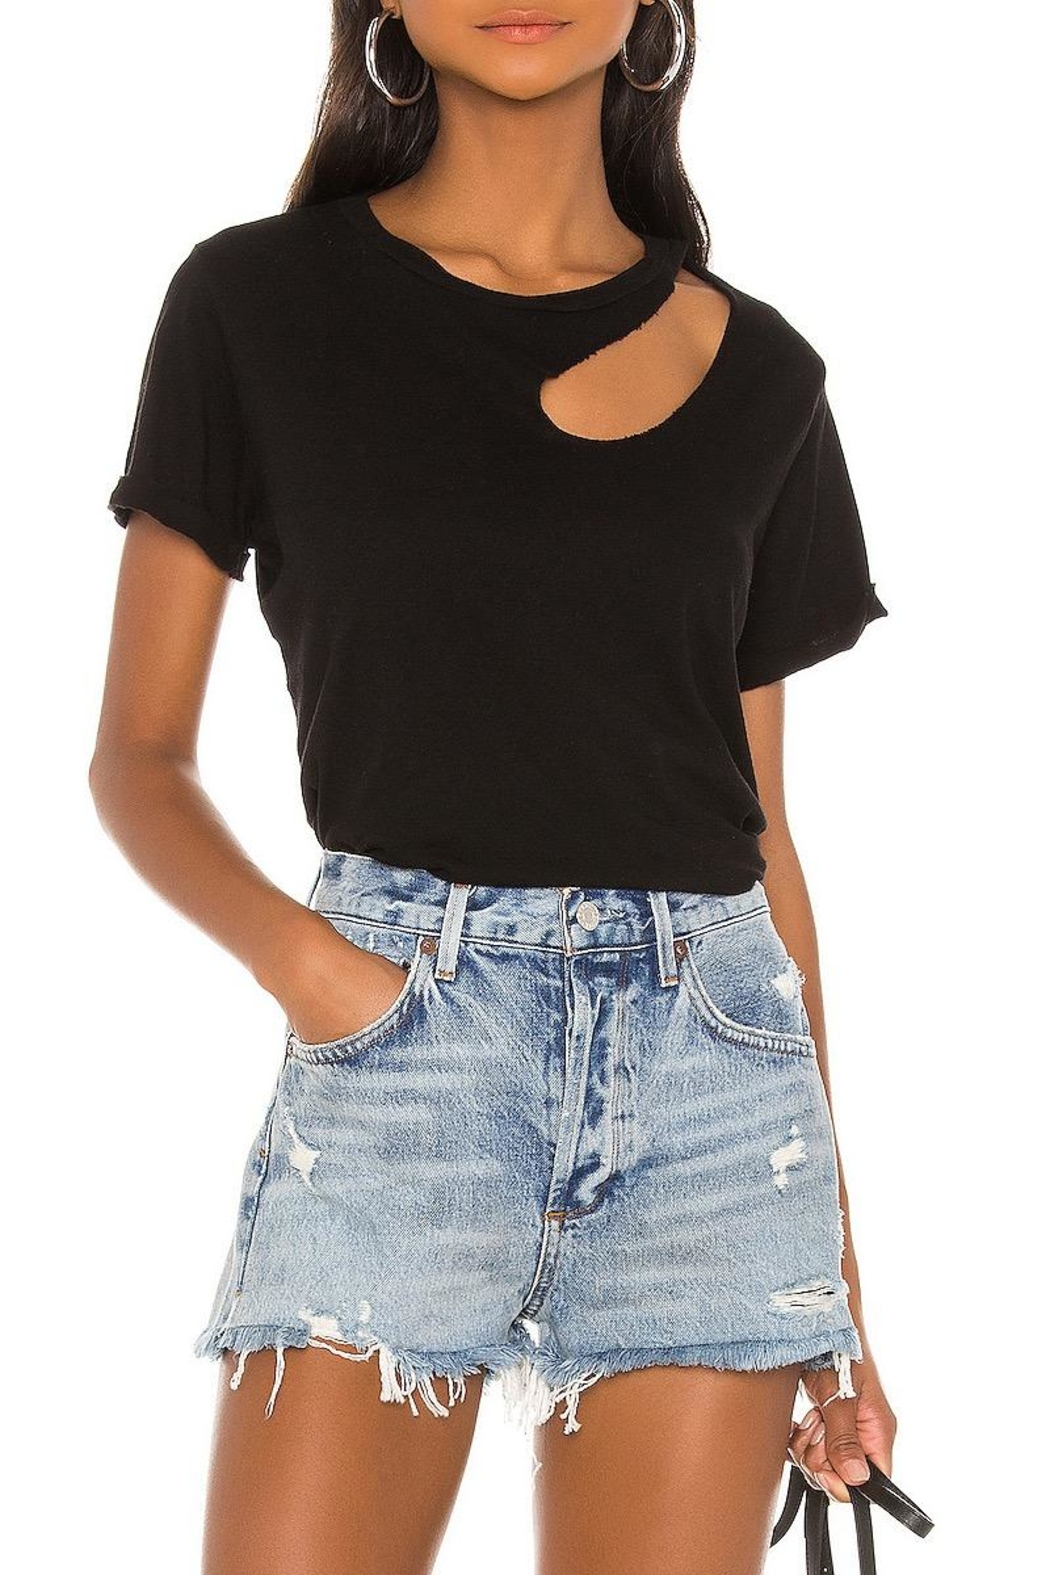 Michael Lauren Berkley Cut-Out Tee - Main Image